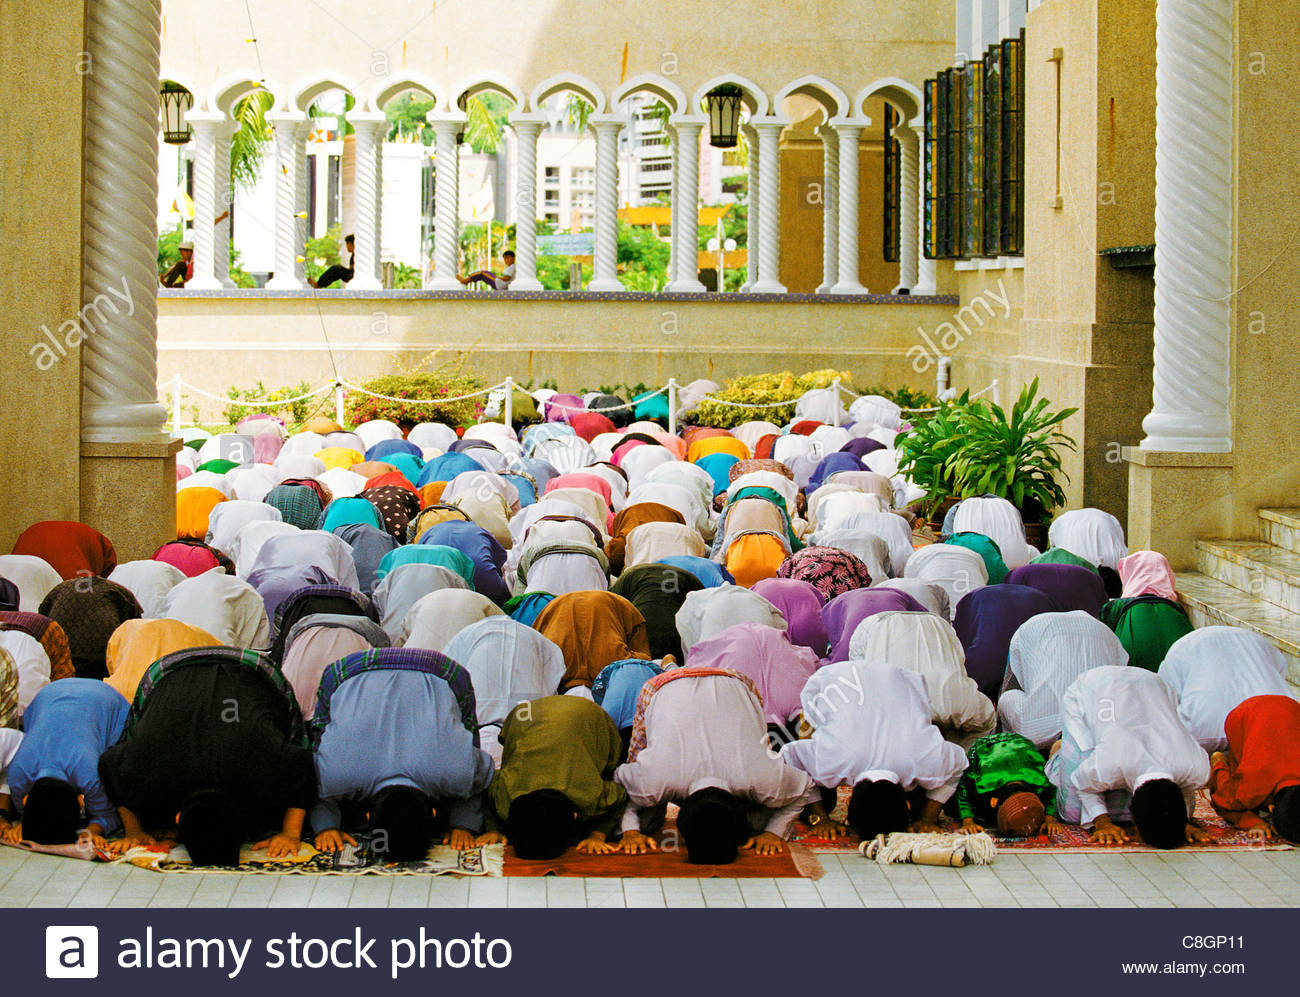 Muslims at prayer in a mosque. - Stock Image